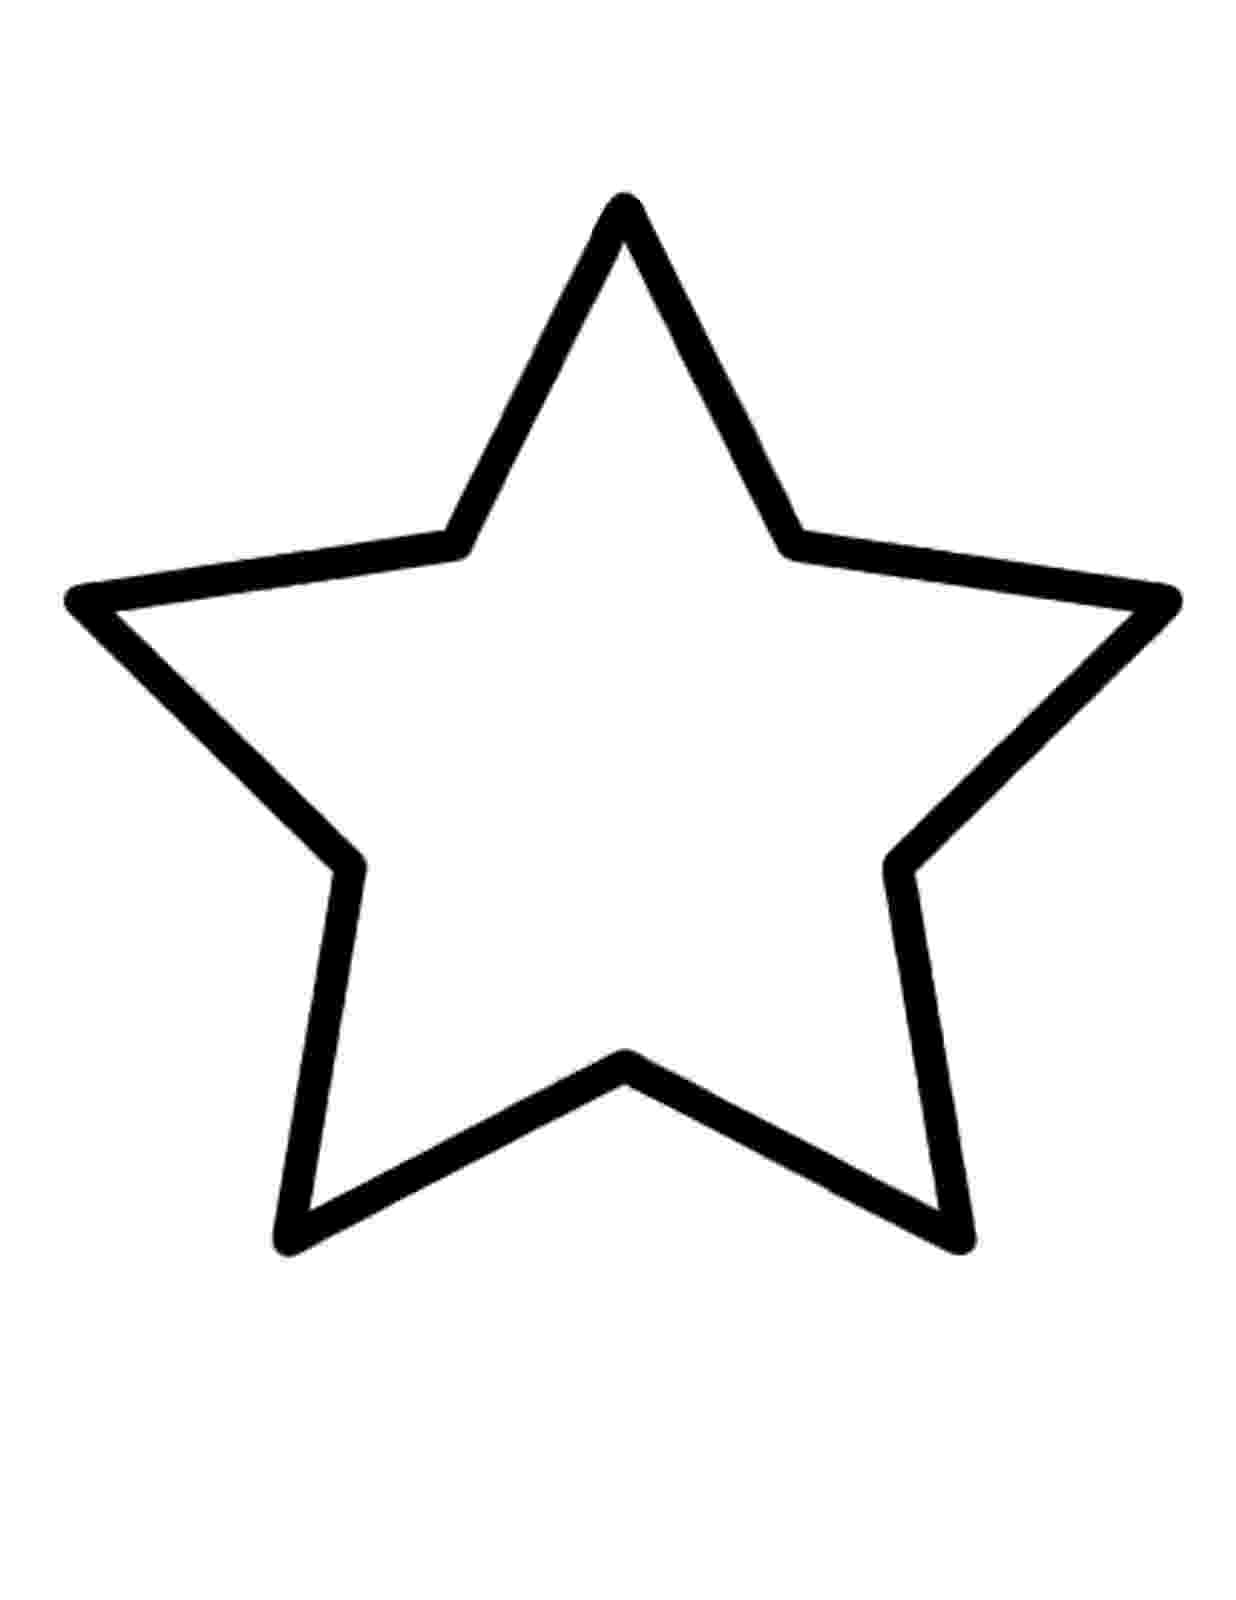 star coloring sheet free printable star coloring pages for kids coloring sheet star